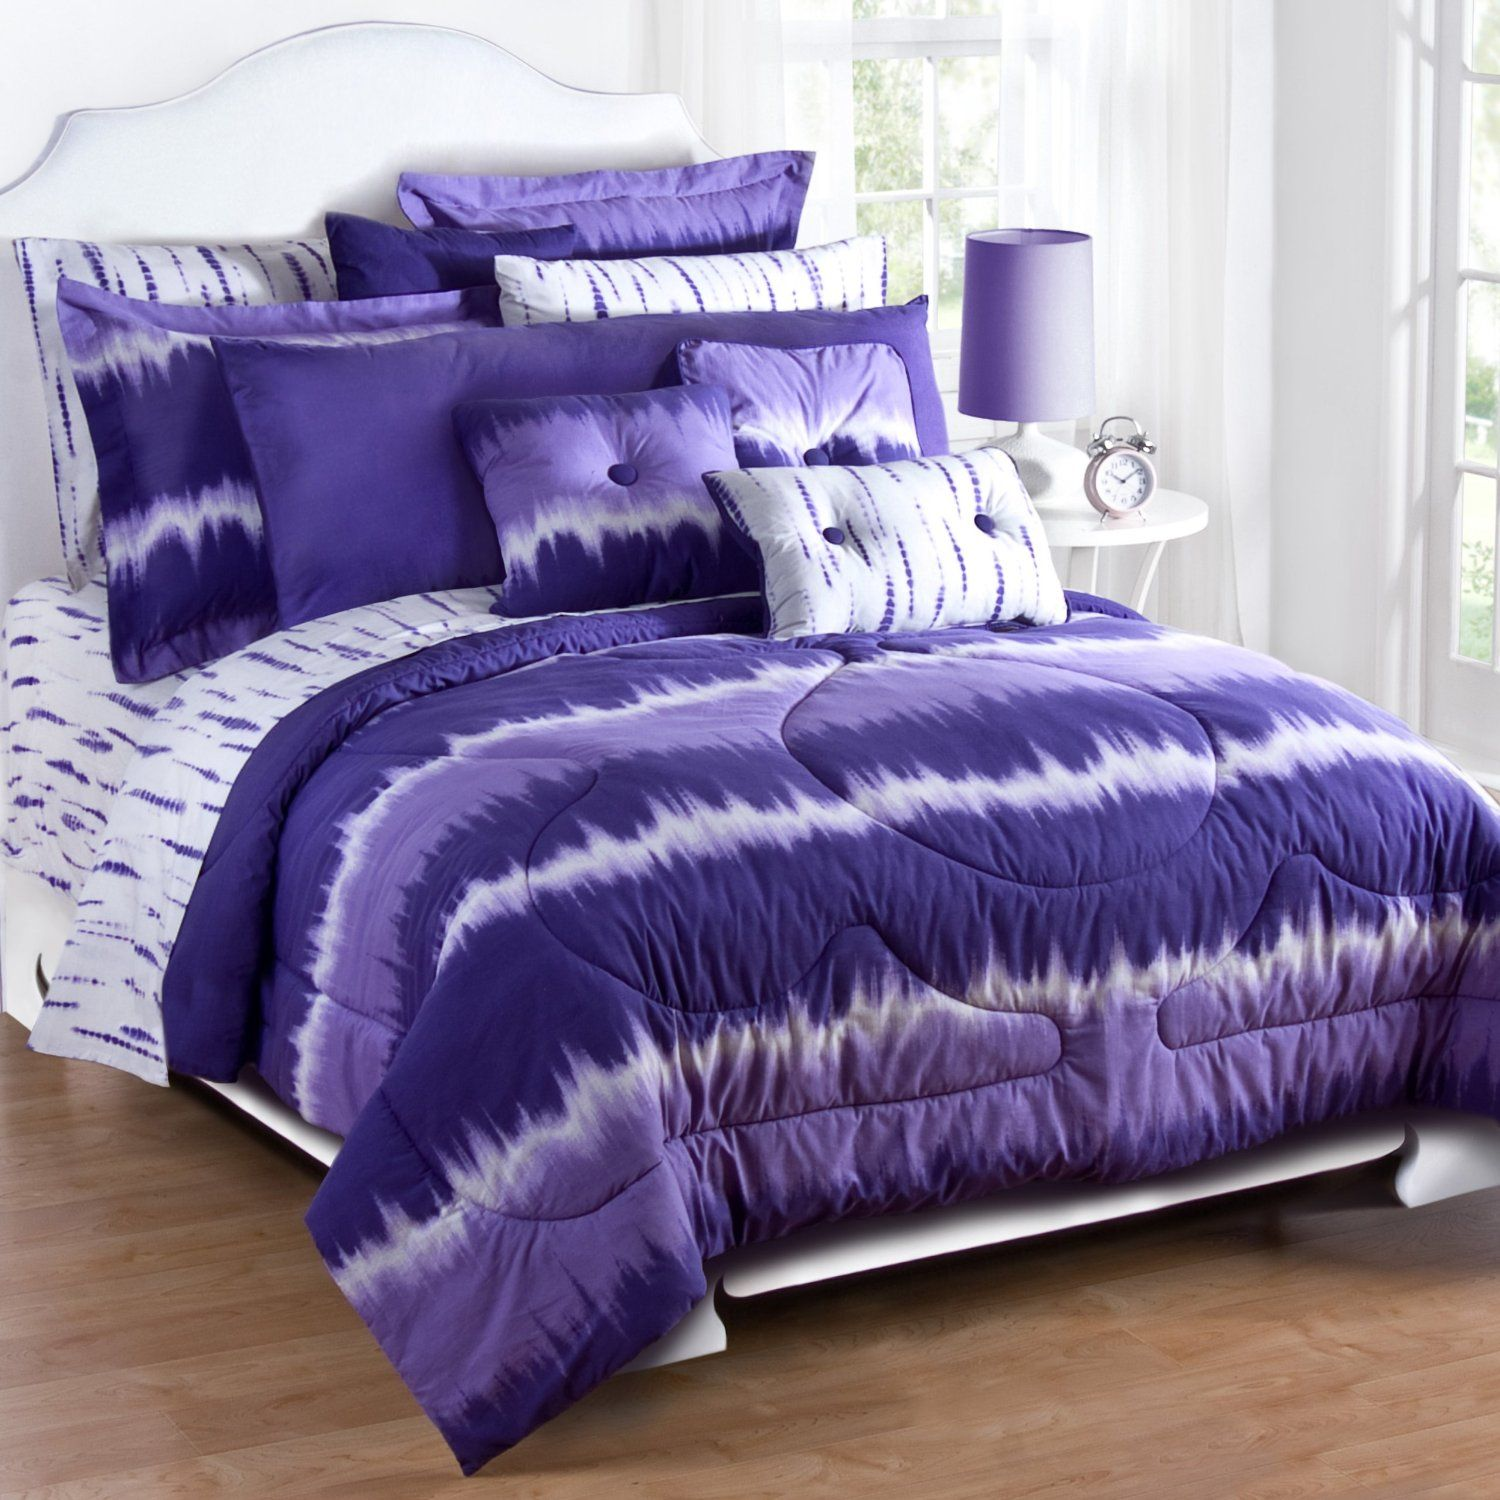 Purple bedding for teenage girls - Purple Tie Dye Comforter Set Omg I Want This